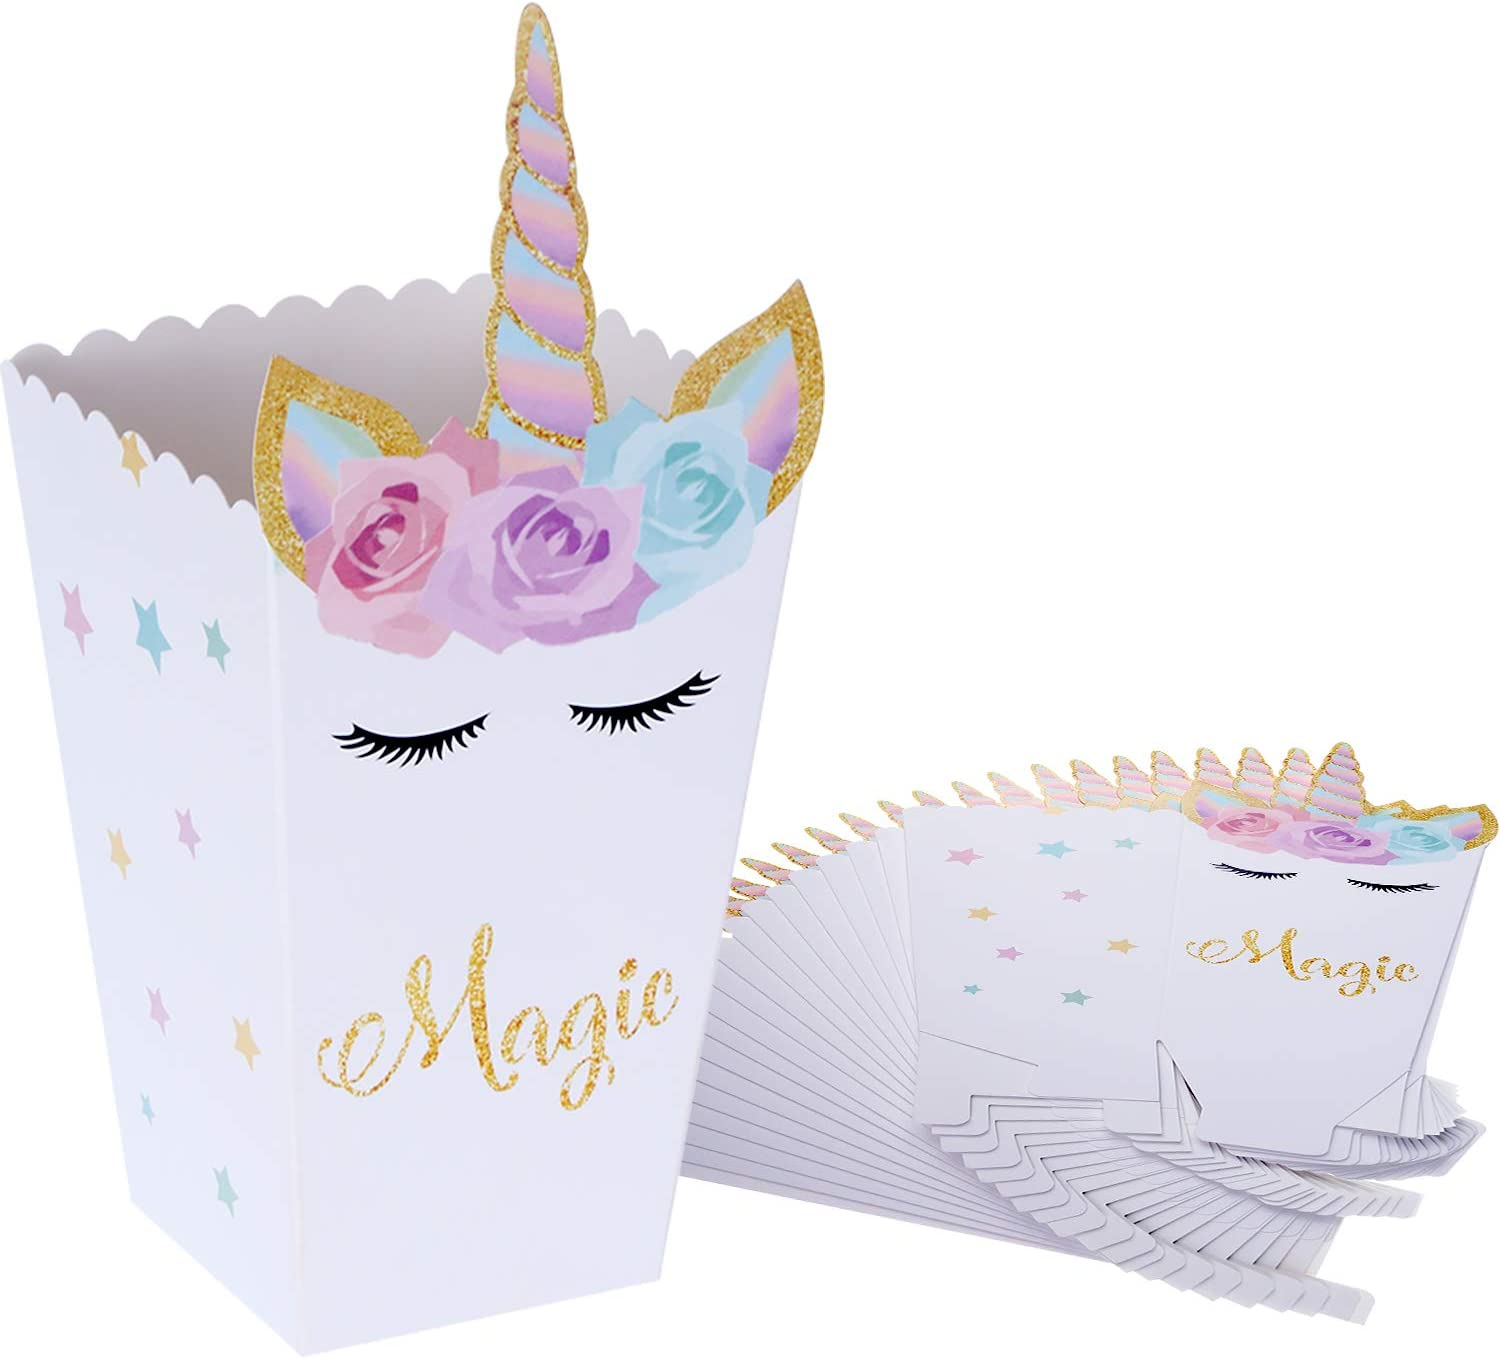 SATINIOR 24 Pieces Popcorn Snack Boxes Rainbow Unicorn Pattern Treat Box Popcorn Container for Baby Shower Birthday Party Supplies(Style 1)